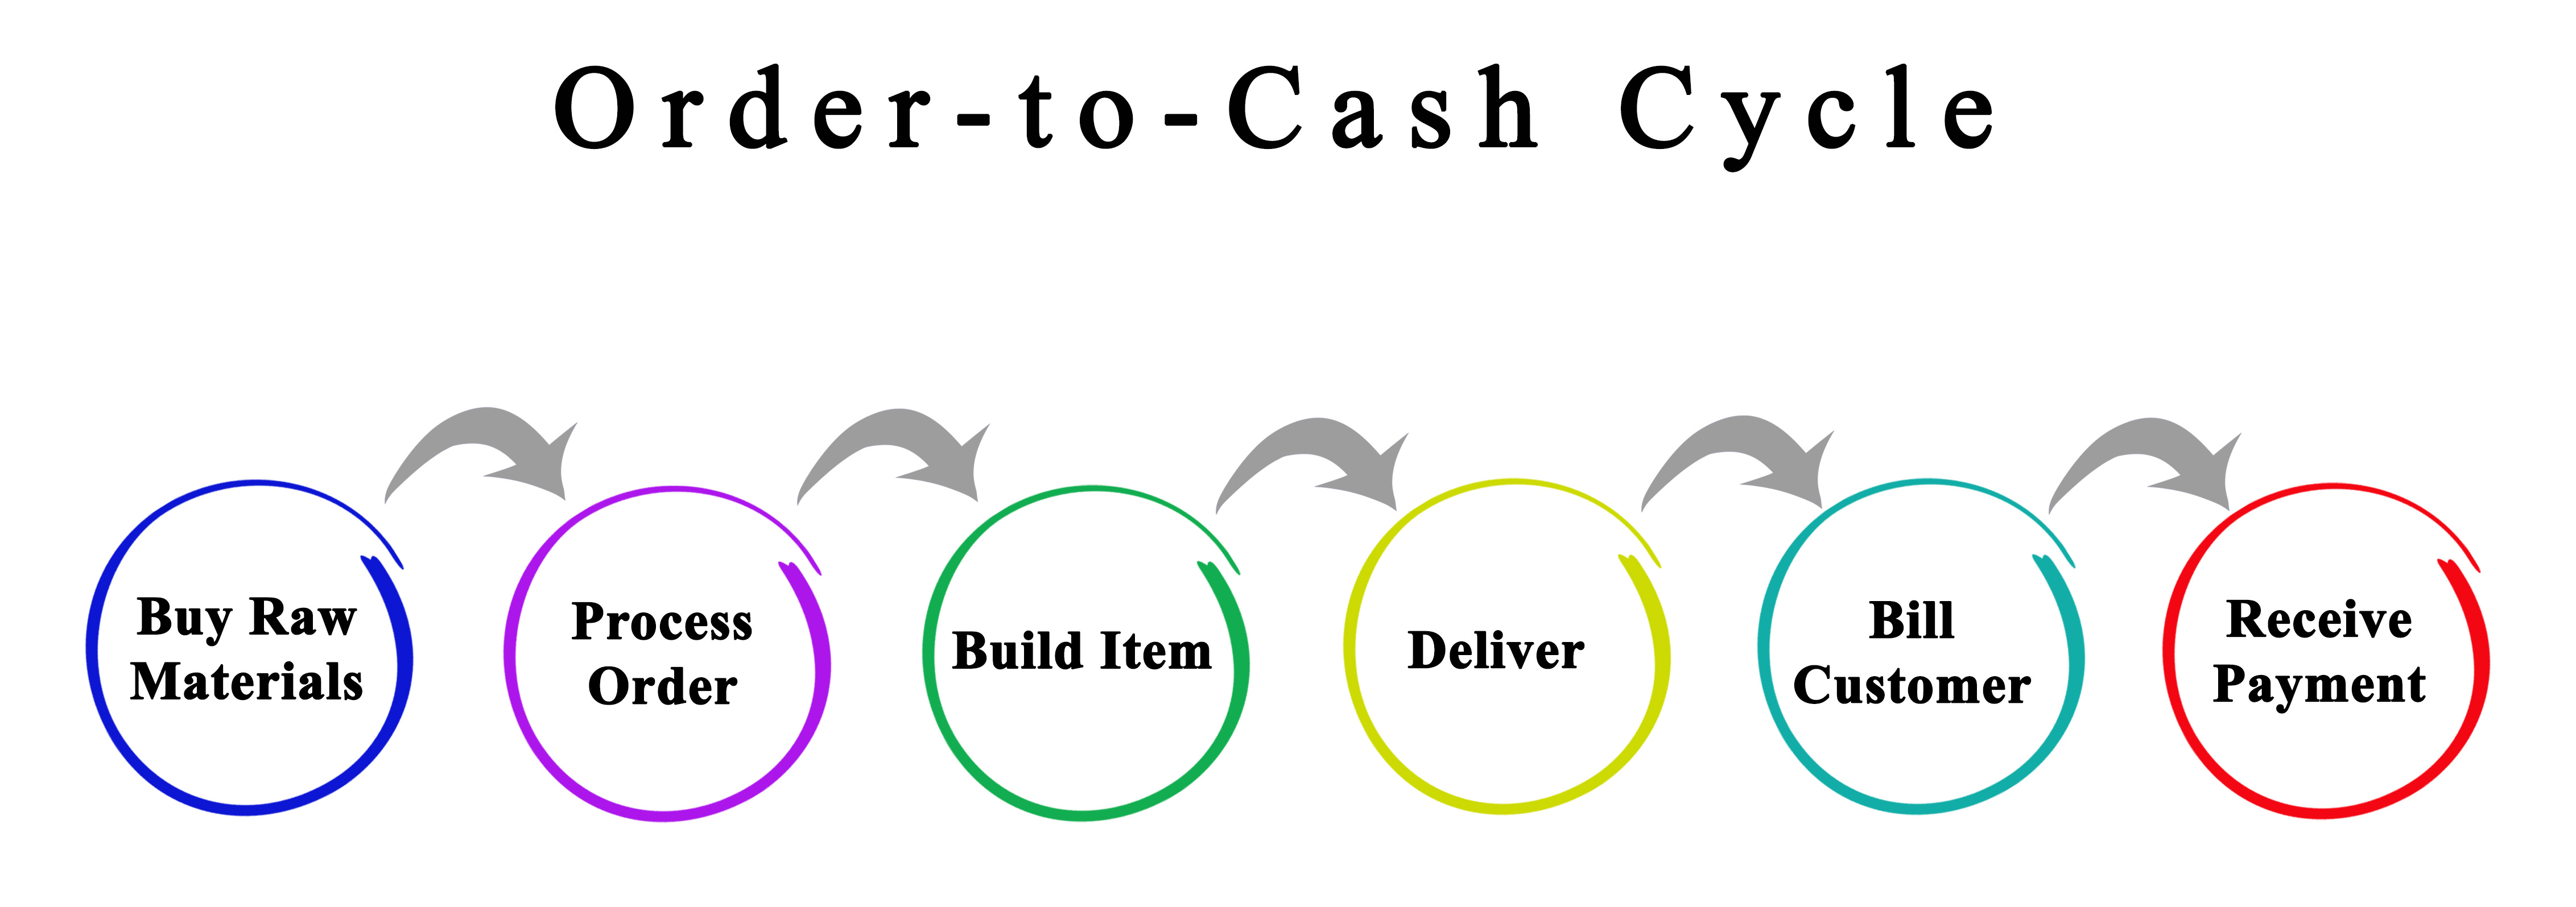 Importance of Order-to-Cash Cycle in Logistics & Supply Chain